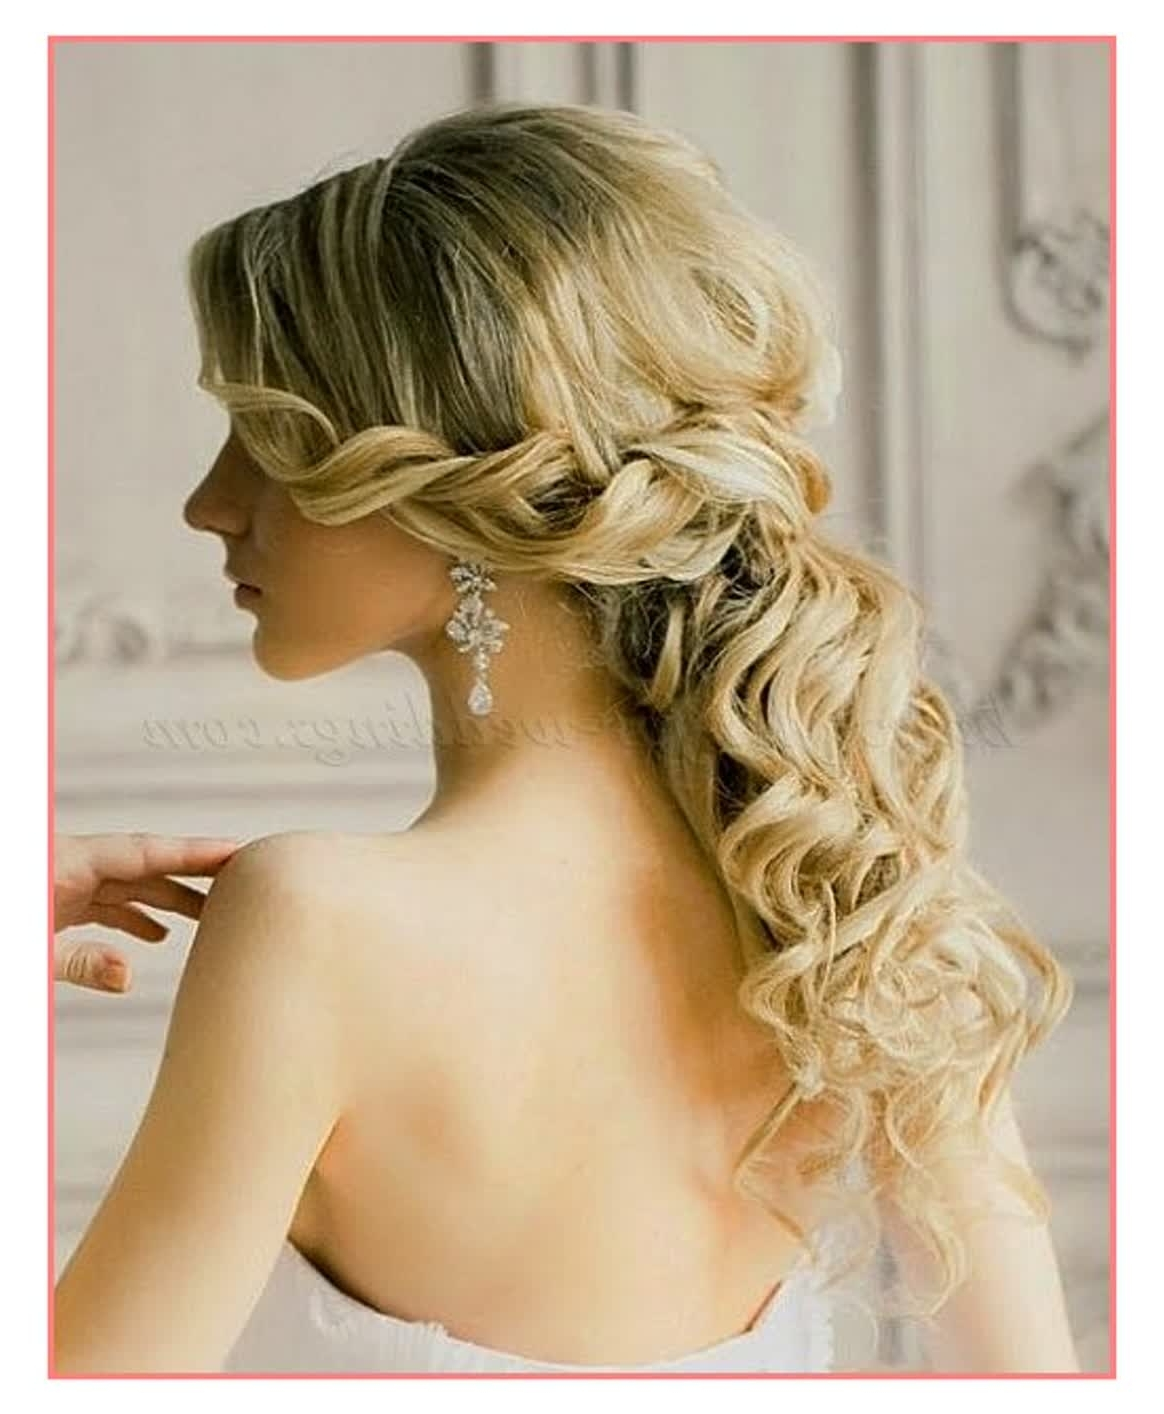 15 Photo Of Half Up Half Down Wedding Hairstyles For